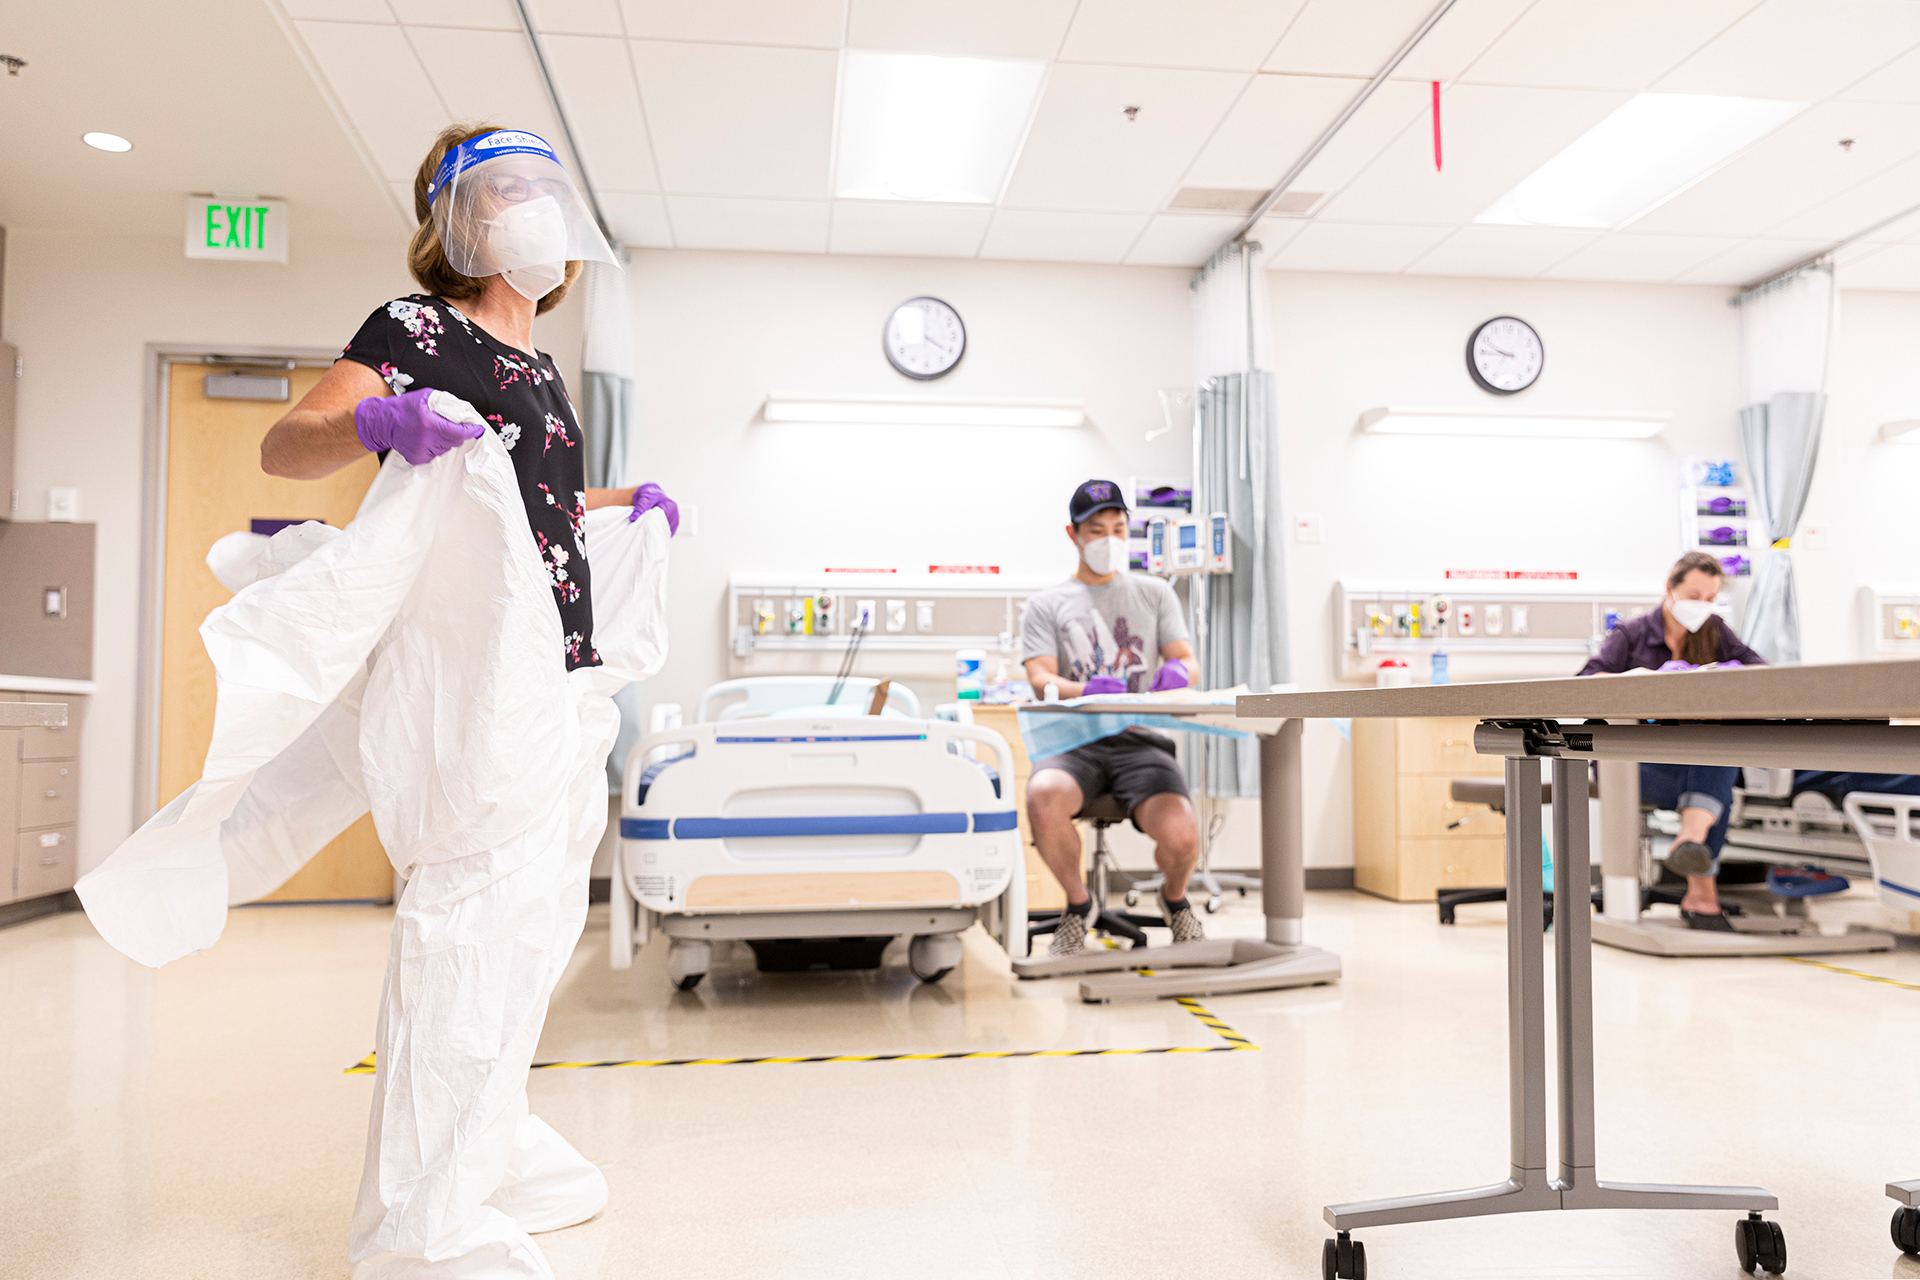 Students practice physical distancing in nursing class during Covid-19 outbreak of 2020